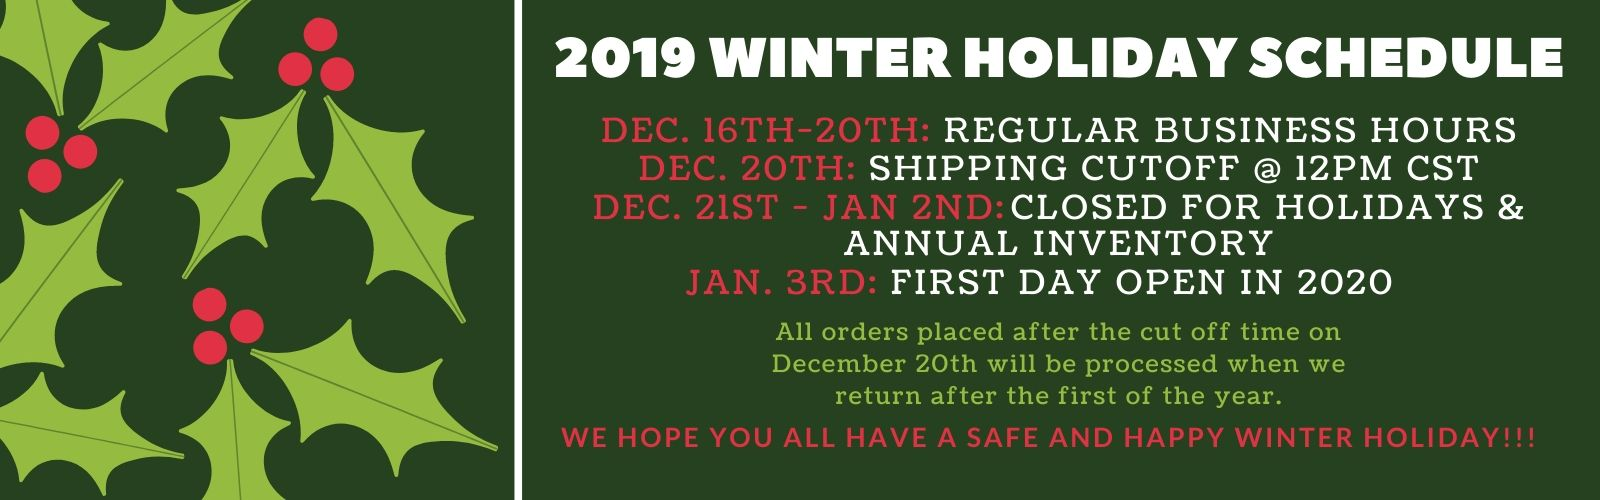 2019 WINTER HOLIDAY SCHEDULE